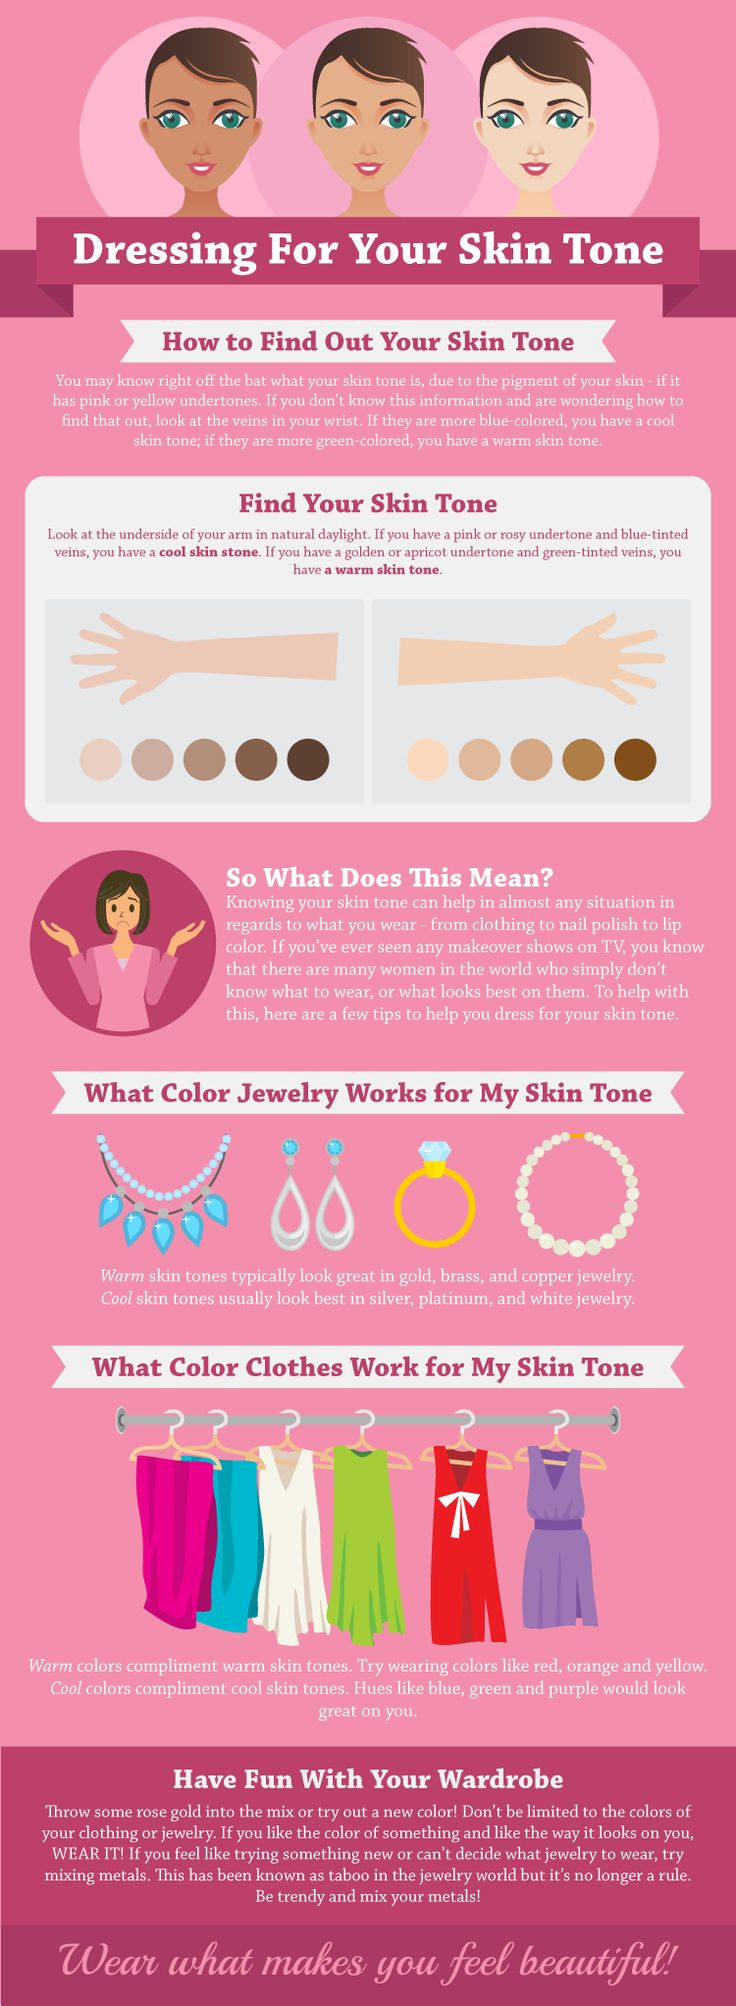 How to Dress For Your Skin Tone Infographic. Knowing what